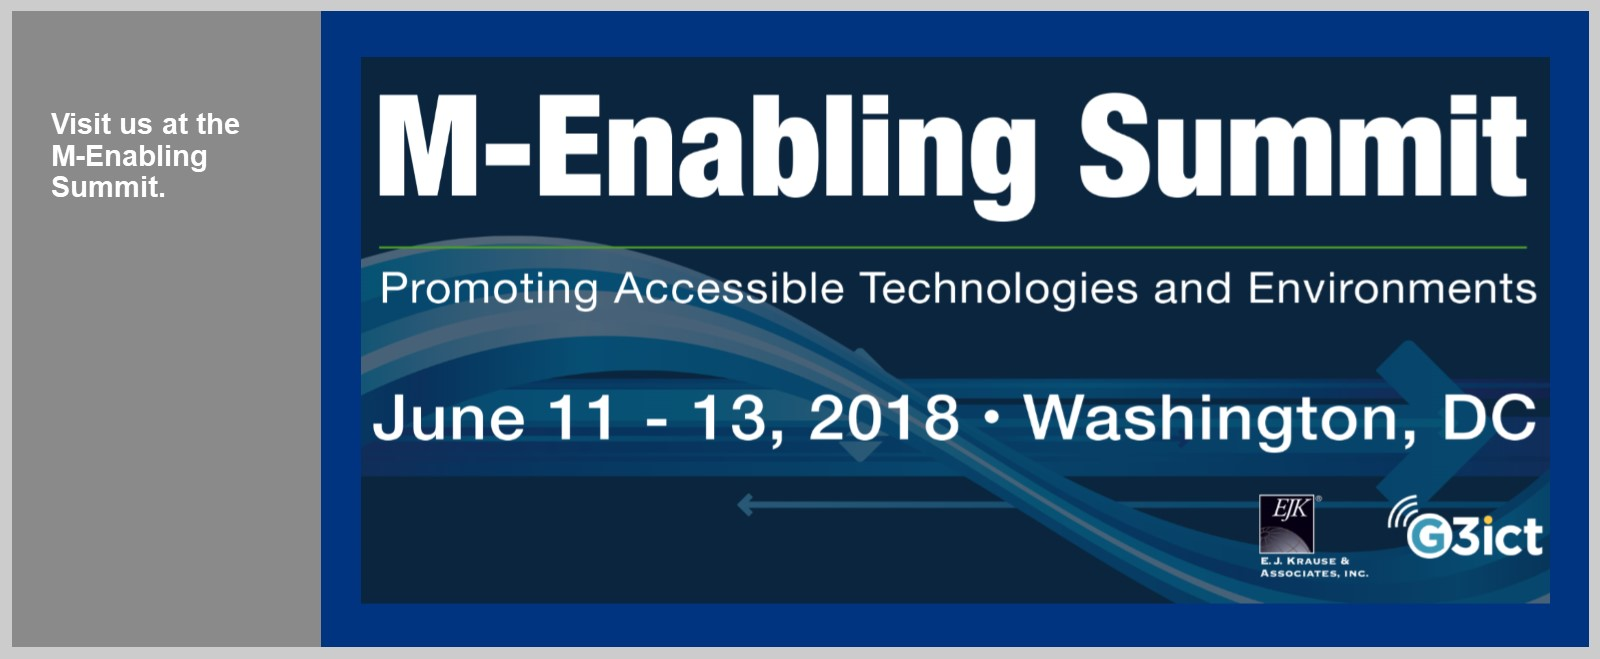 M-Enabling Summit - Promoting Accessible Technologies and Environments - June 11-13, 2018 - Washington, DC - Sponsors - EJ Krause & Associates, Inc. and G3ict